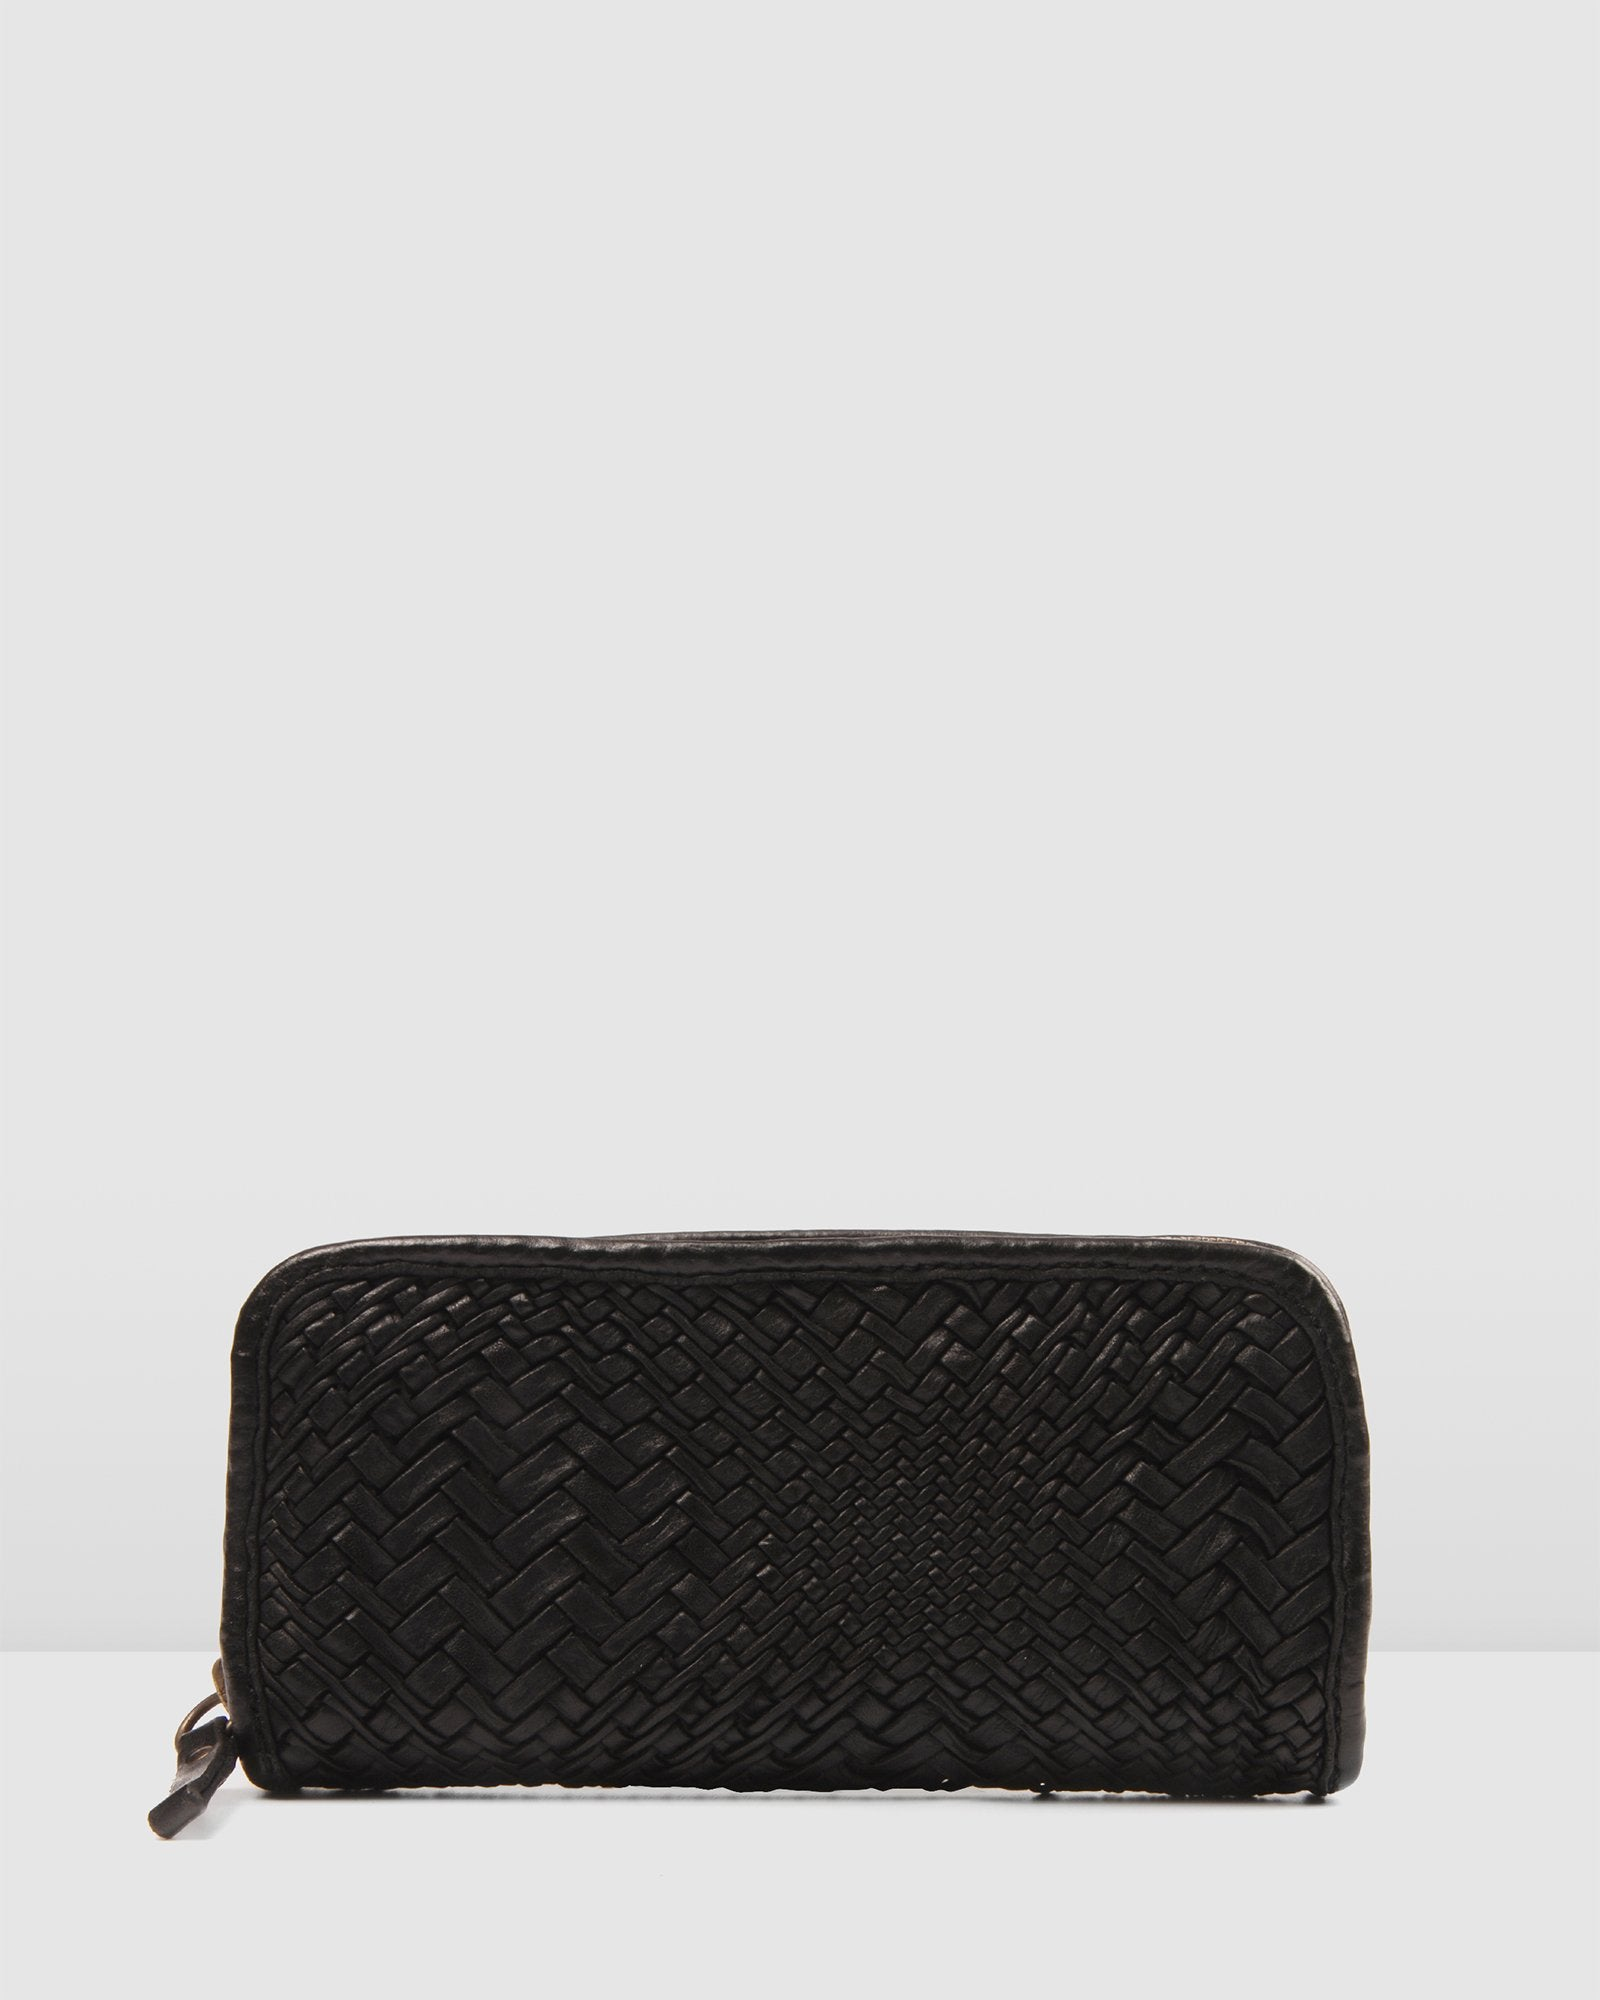 CAMPOMAGGI OPTICAL WALLET BLACK LEATHER